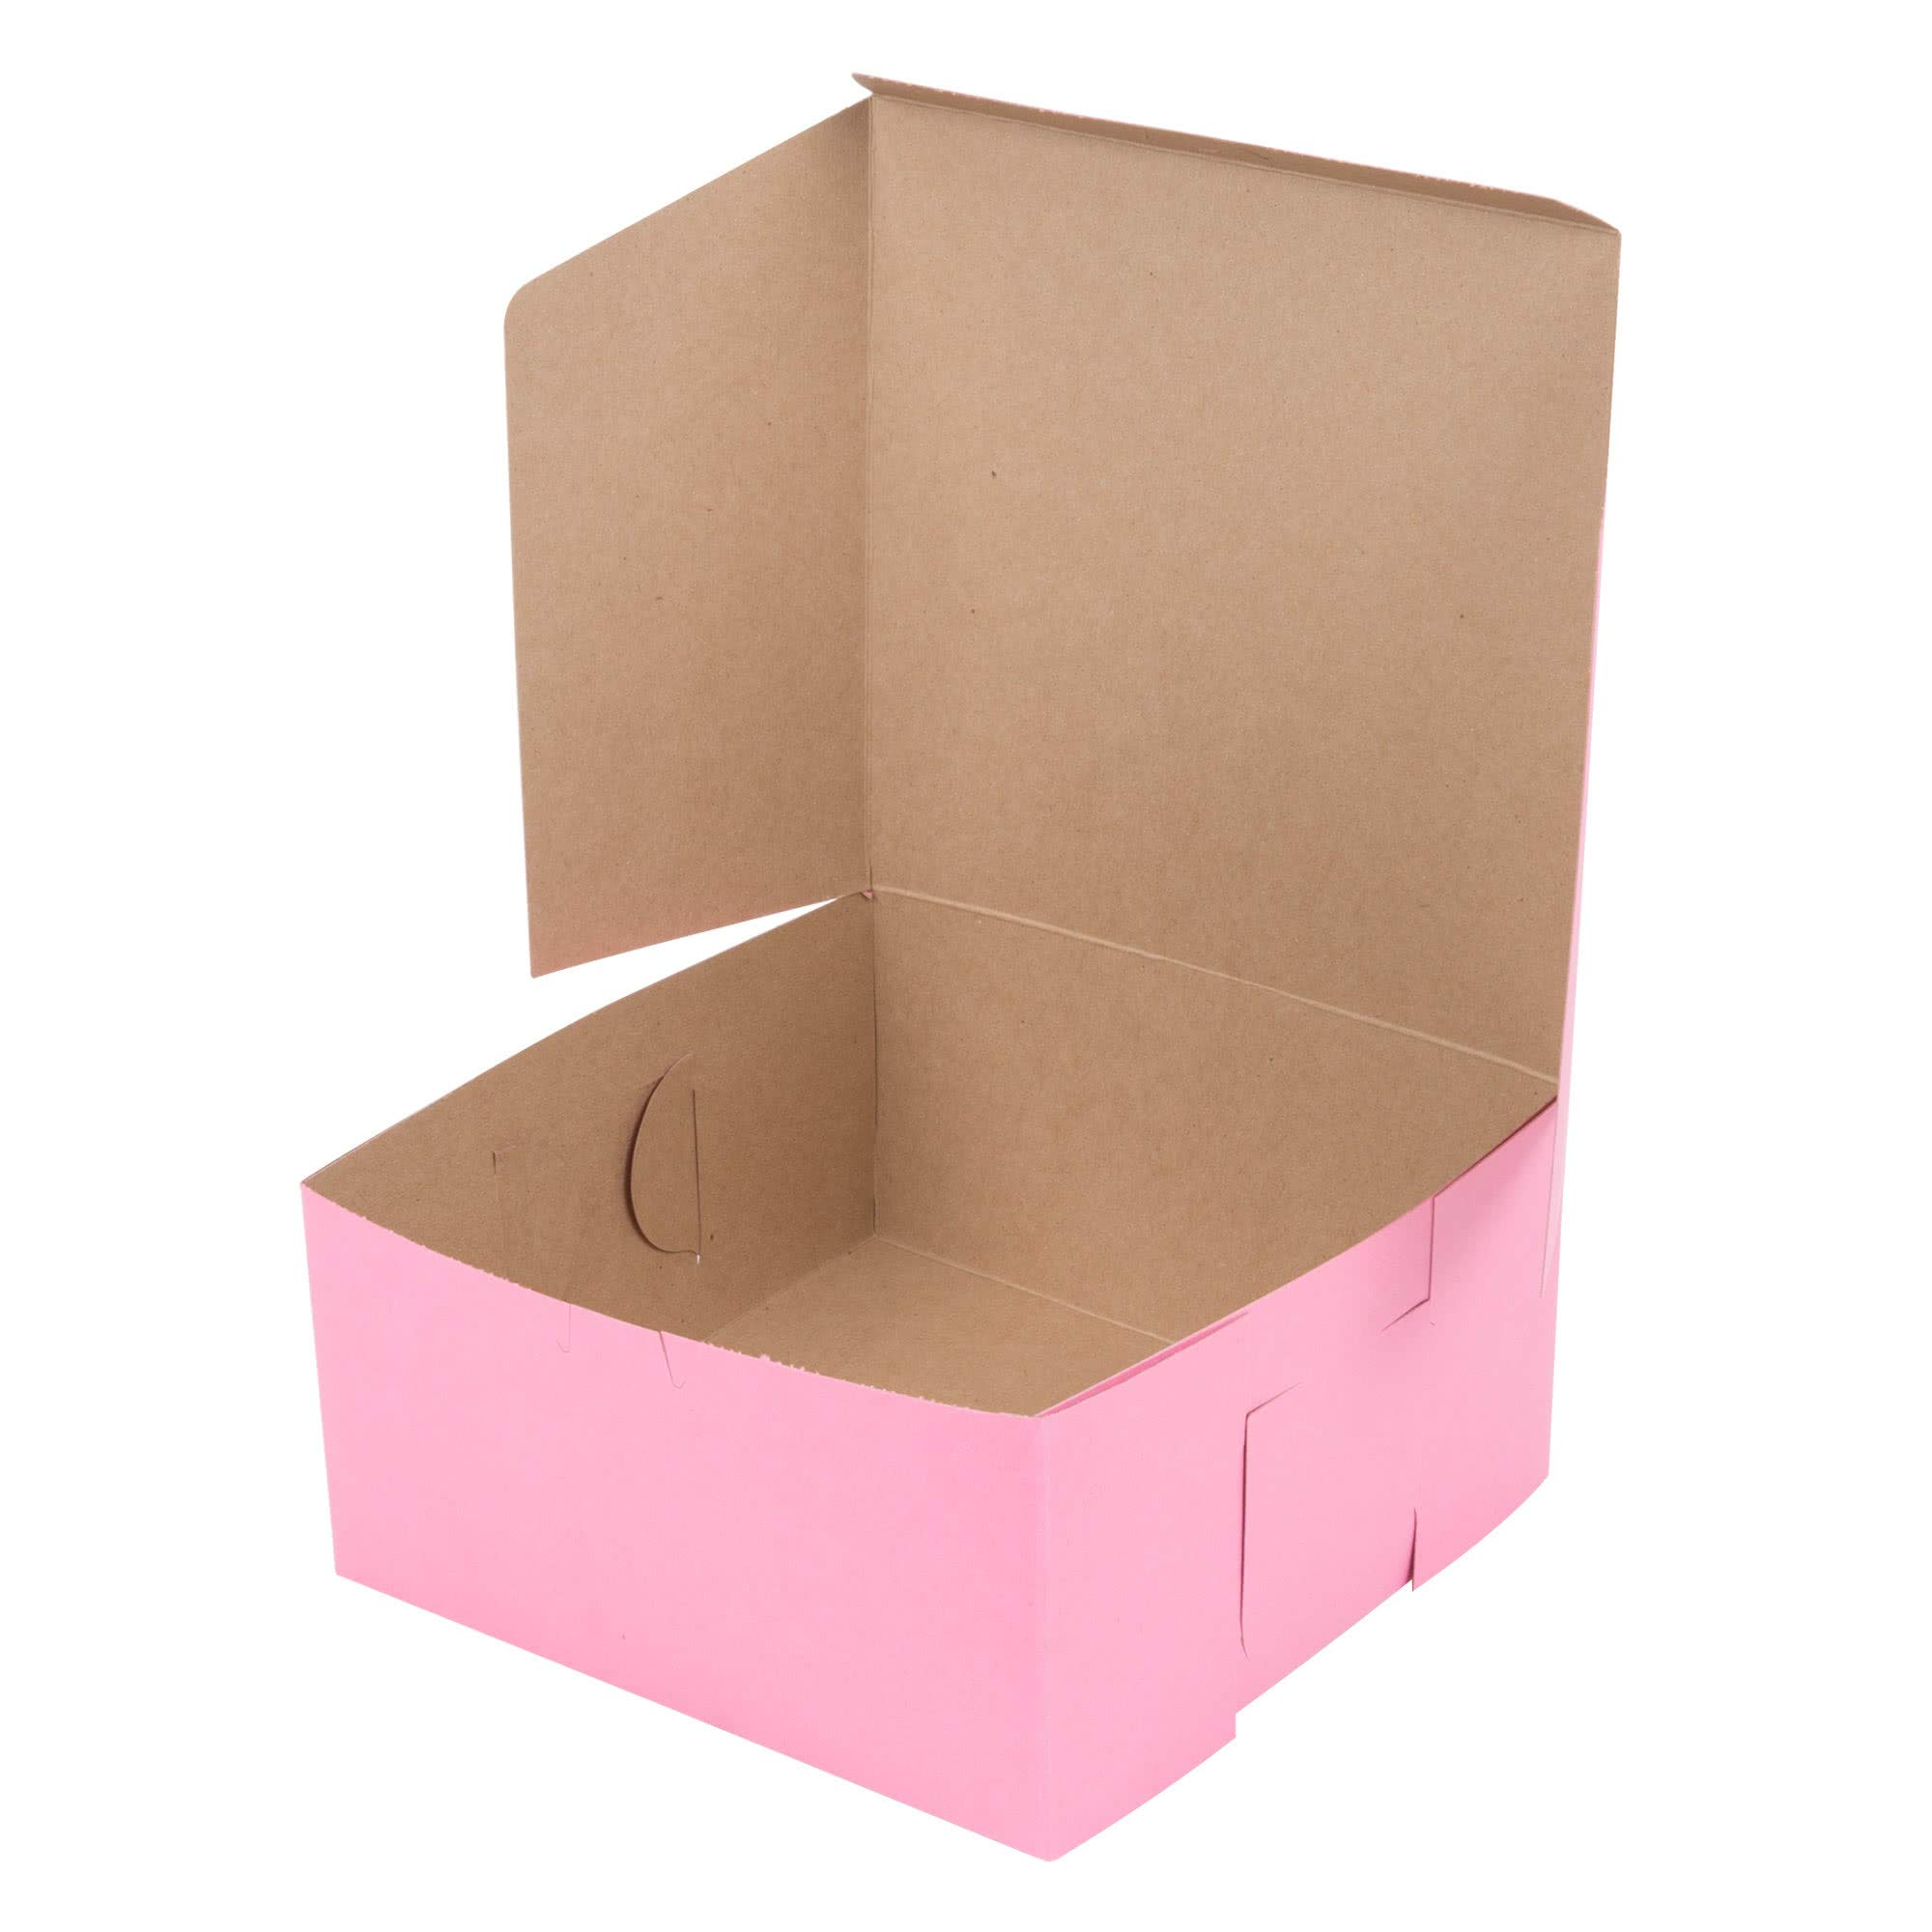 Pack of 10 Pink 10x10x5 Bakery or Cake Box by Southern Champion (Image #1)